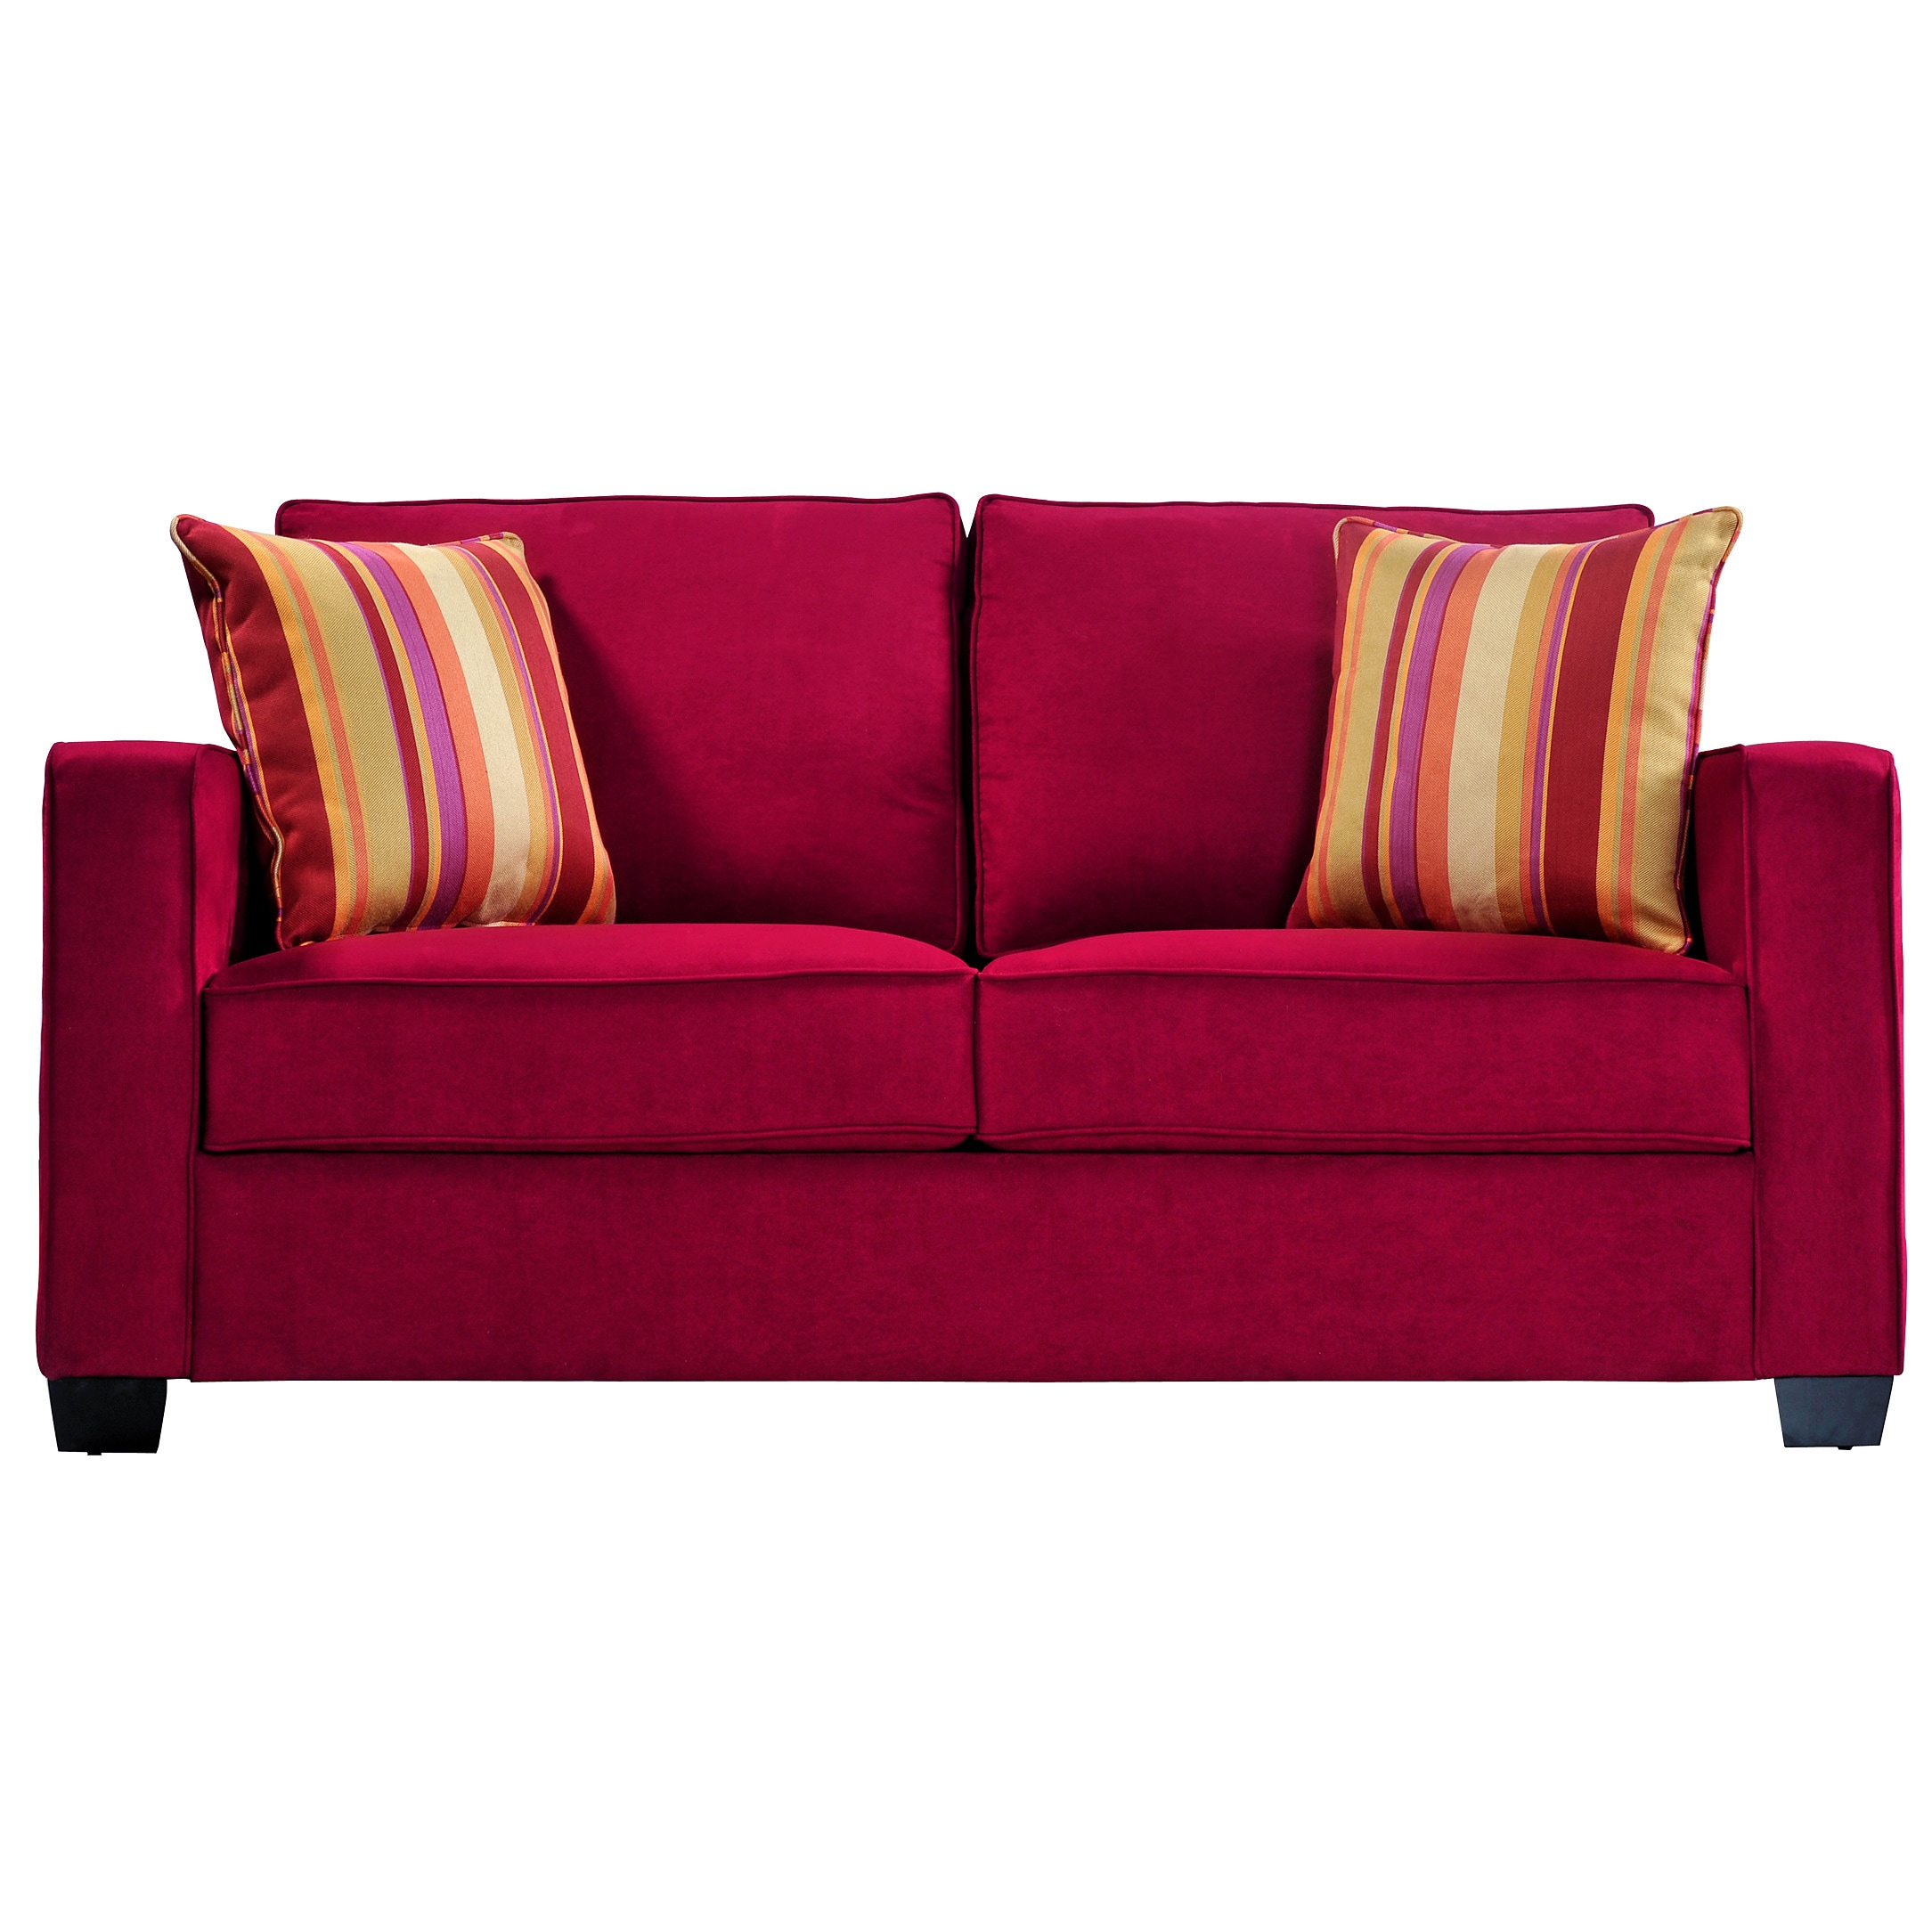 Shop Handy Living Madi Crimson Red Microfiber Sofa with Wine Striped ...